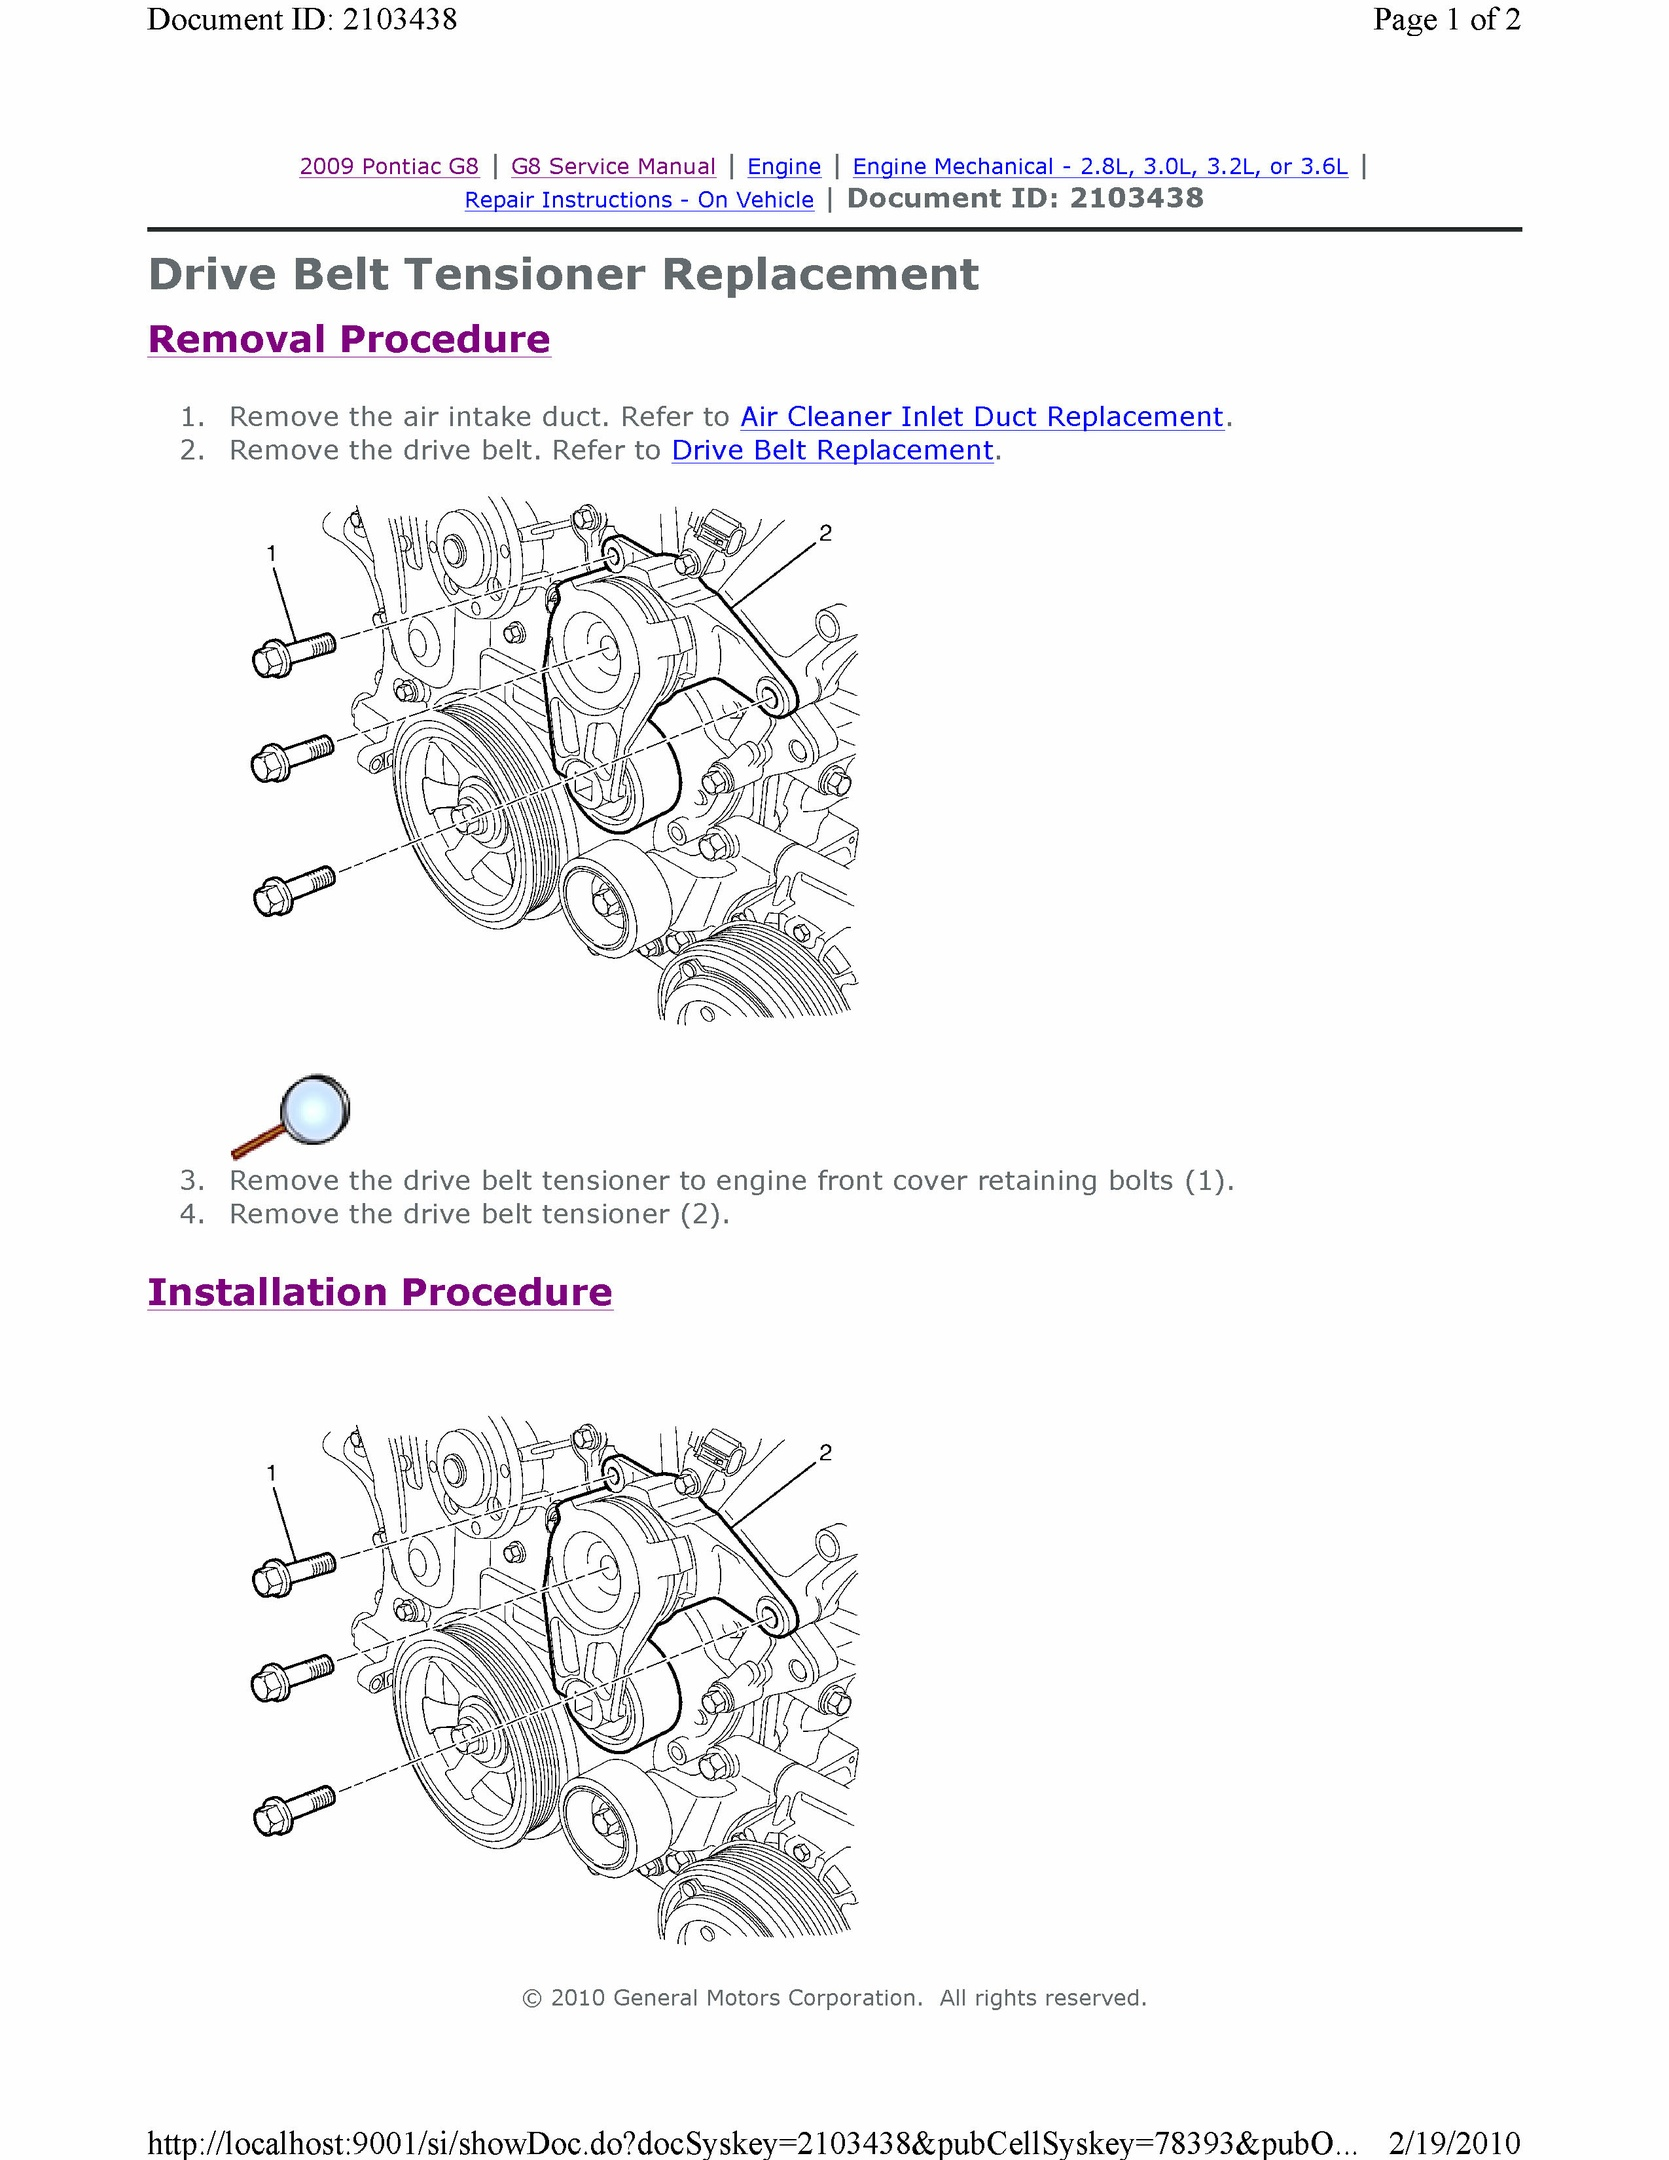 2008 2011 Oem Service Repair Manual For Holden Commodo Engine Diagram File Format Original Coloured Pdfs Language English Printable Yes Requirements Adobe Pdf Reader Delivery Method Download Link Will Appear On The